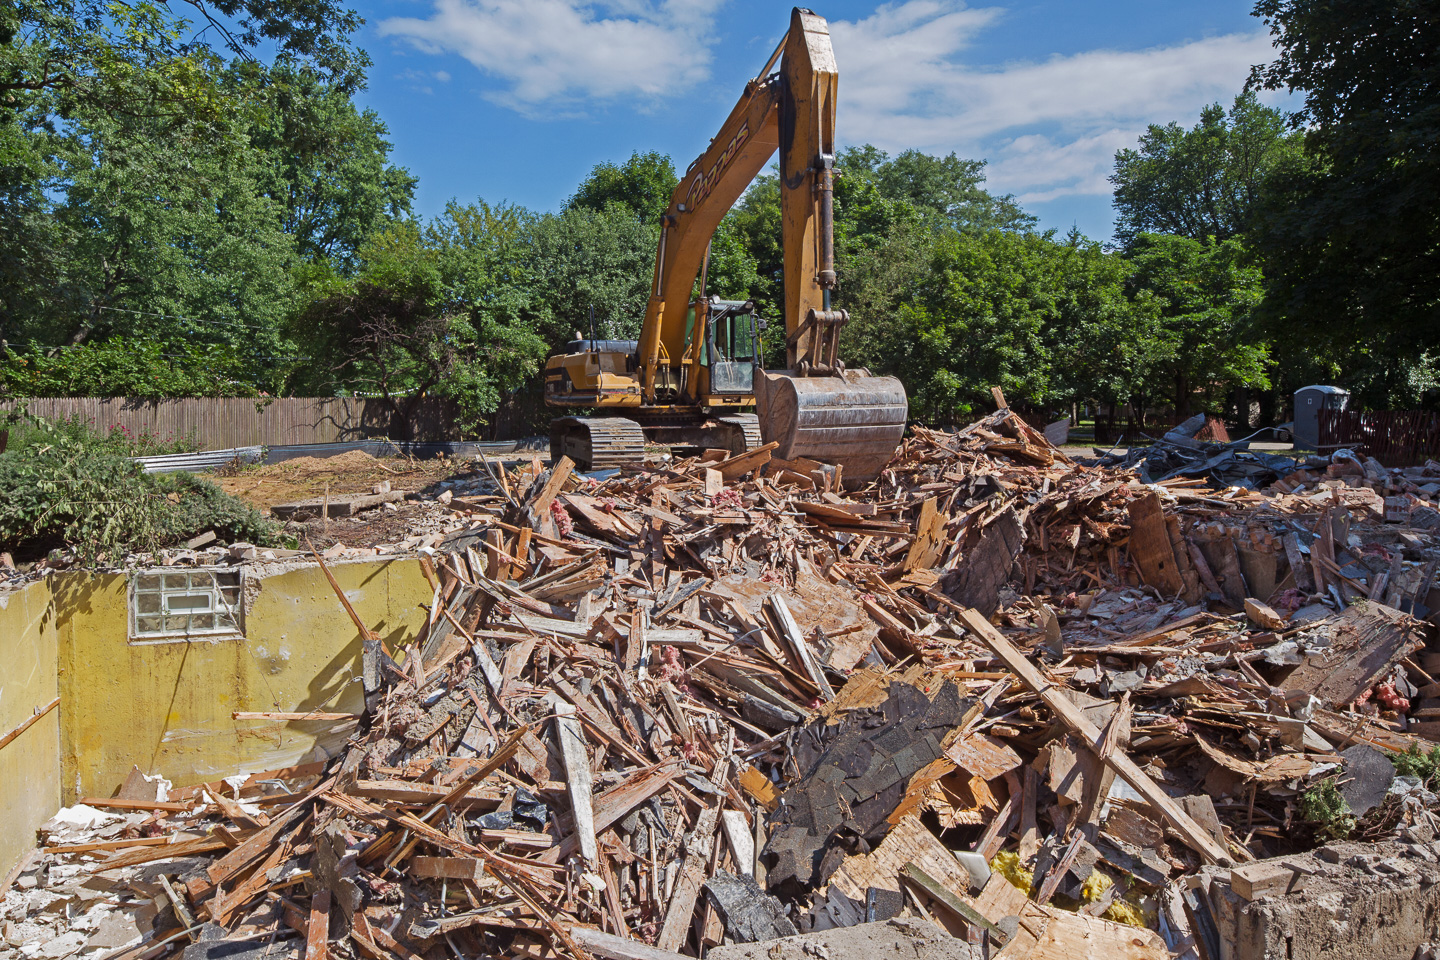 Site demolition - a picture of a backhoe destroying a home.